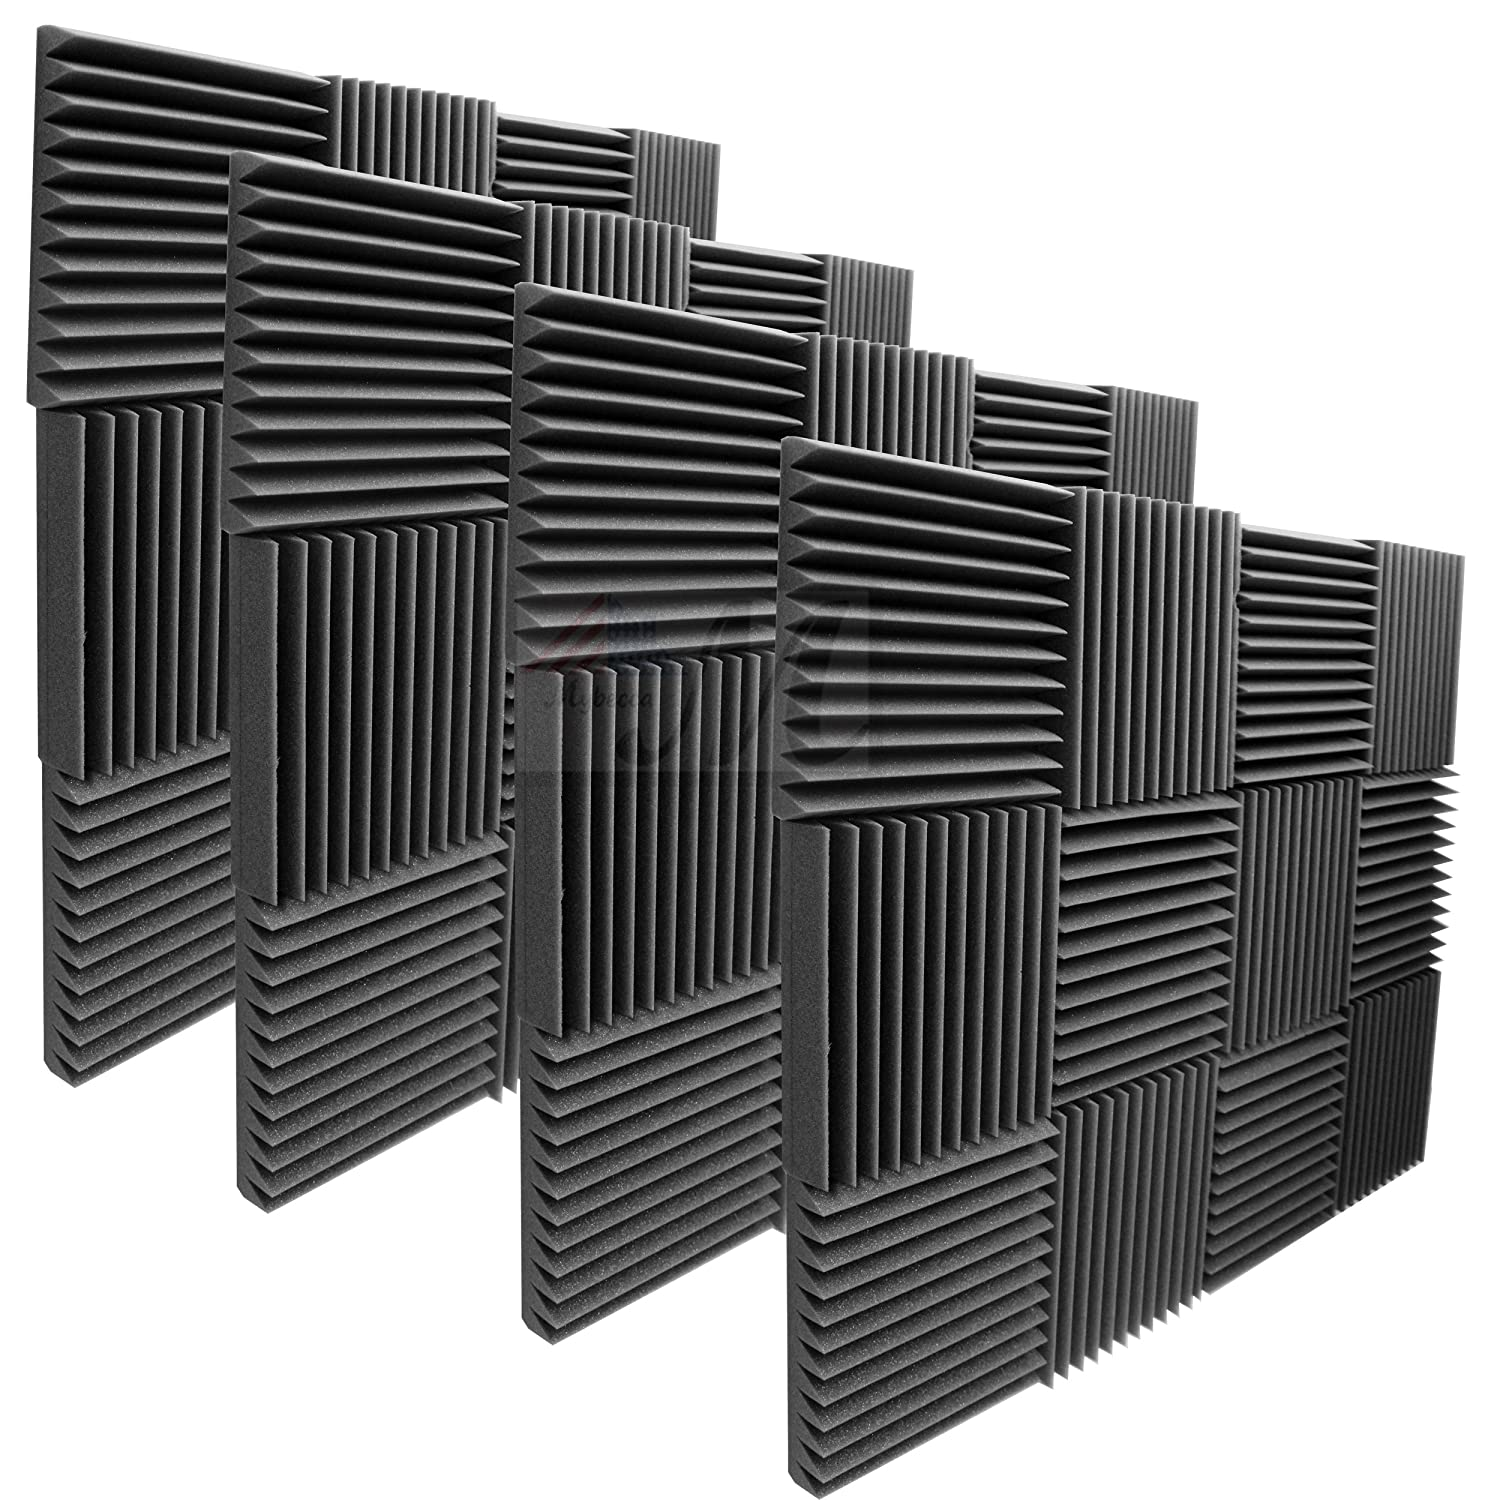 "Mybecca 48 Pack Acoustic Foam Panels 2"" X 12"" X 12"" Studio Wedges Wall Tiles (48 Square Feet), Charcoal"